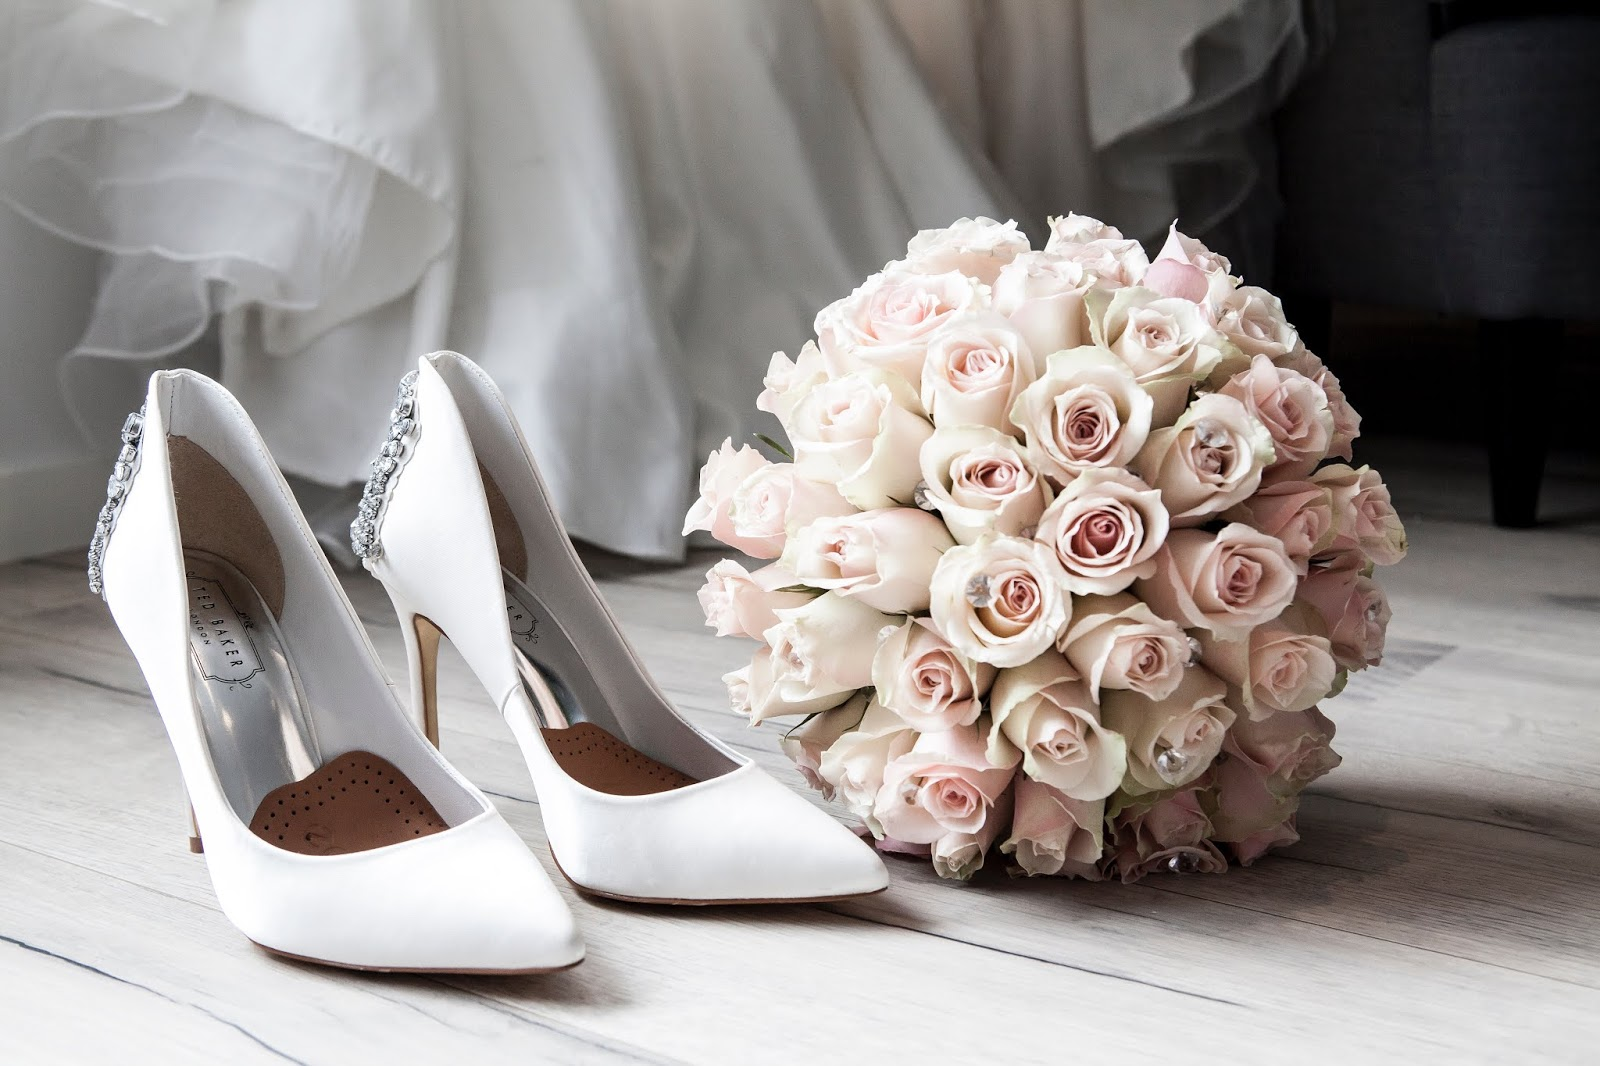 So you're going wedding dress, 8 tips before you go wedding dress shopping for the first time